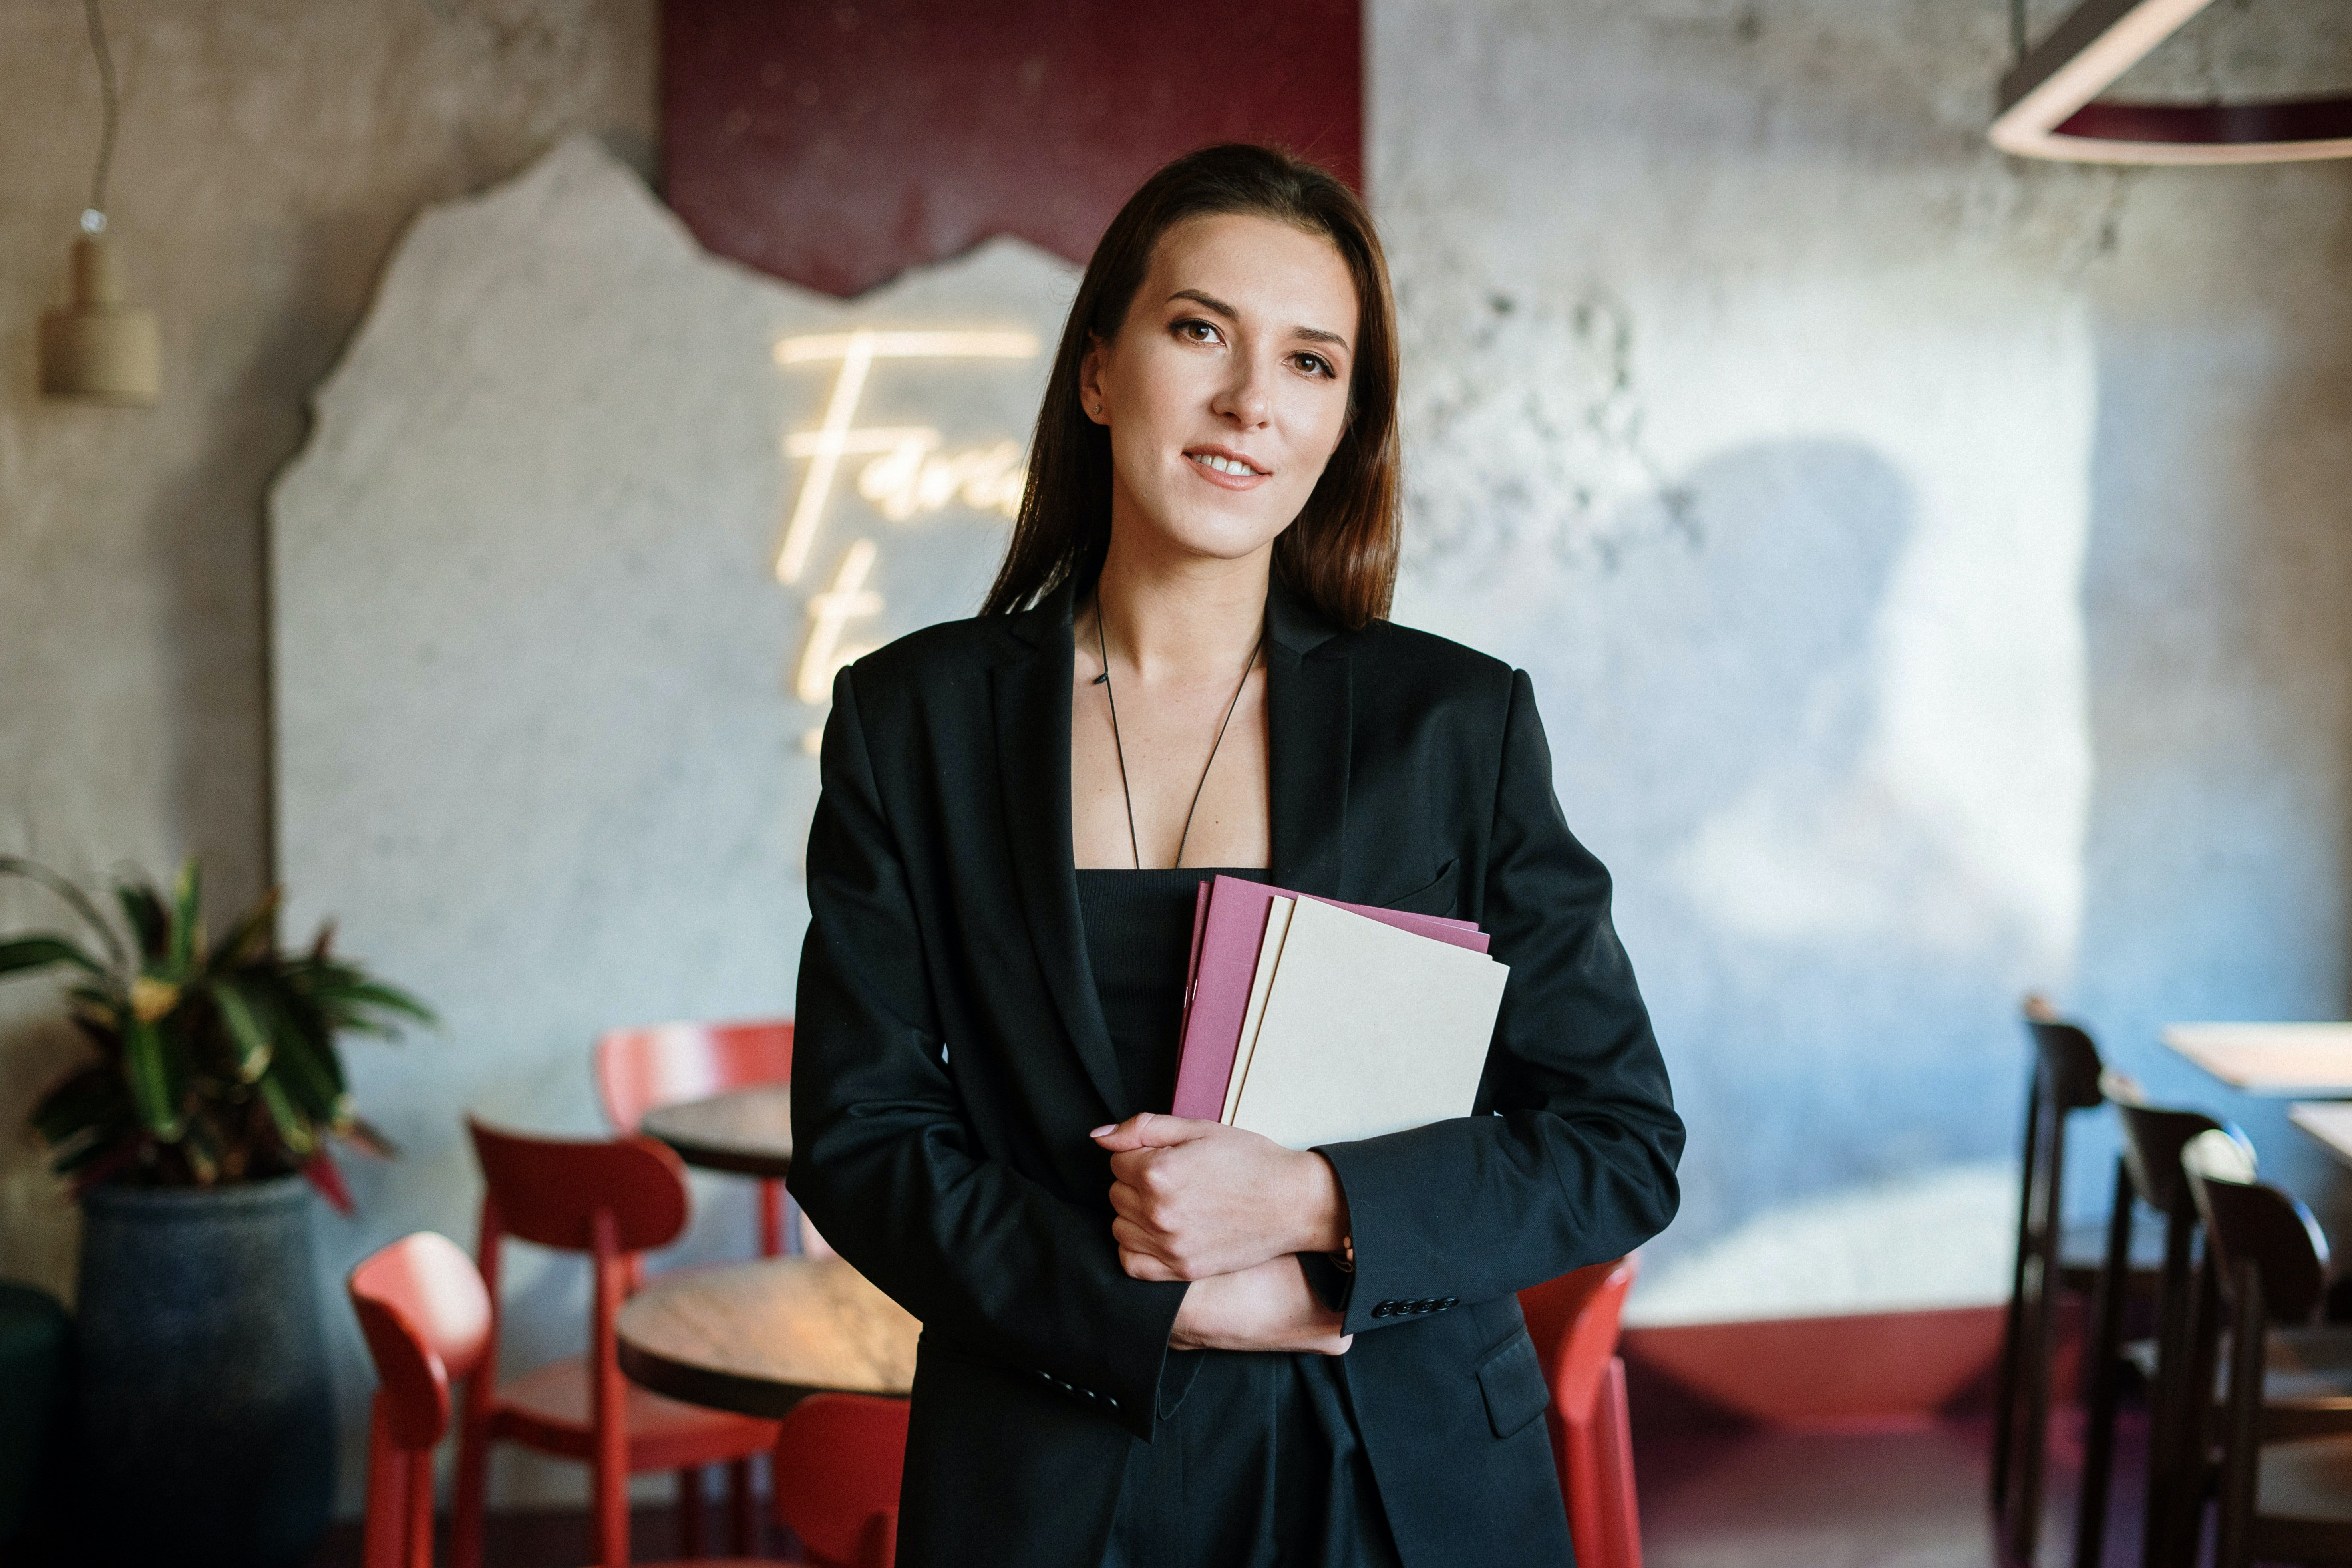 Woman in black blazer holding papers | Photo: Pexels